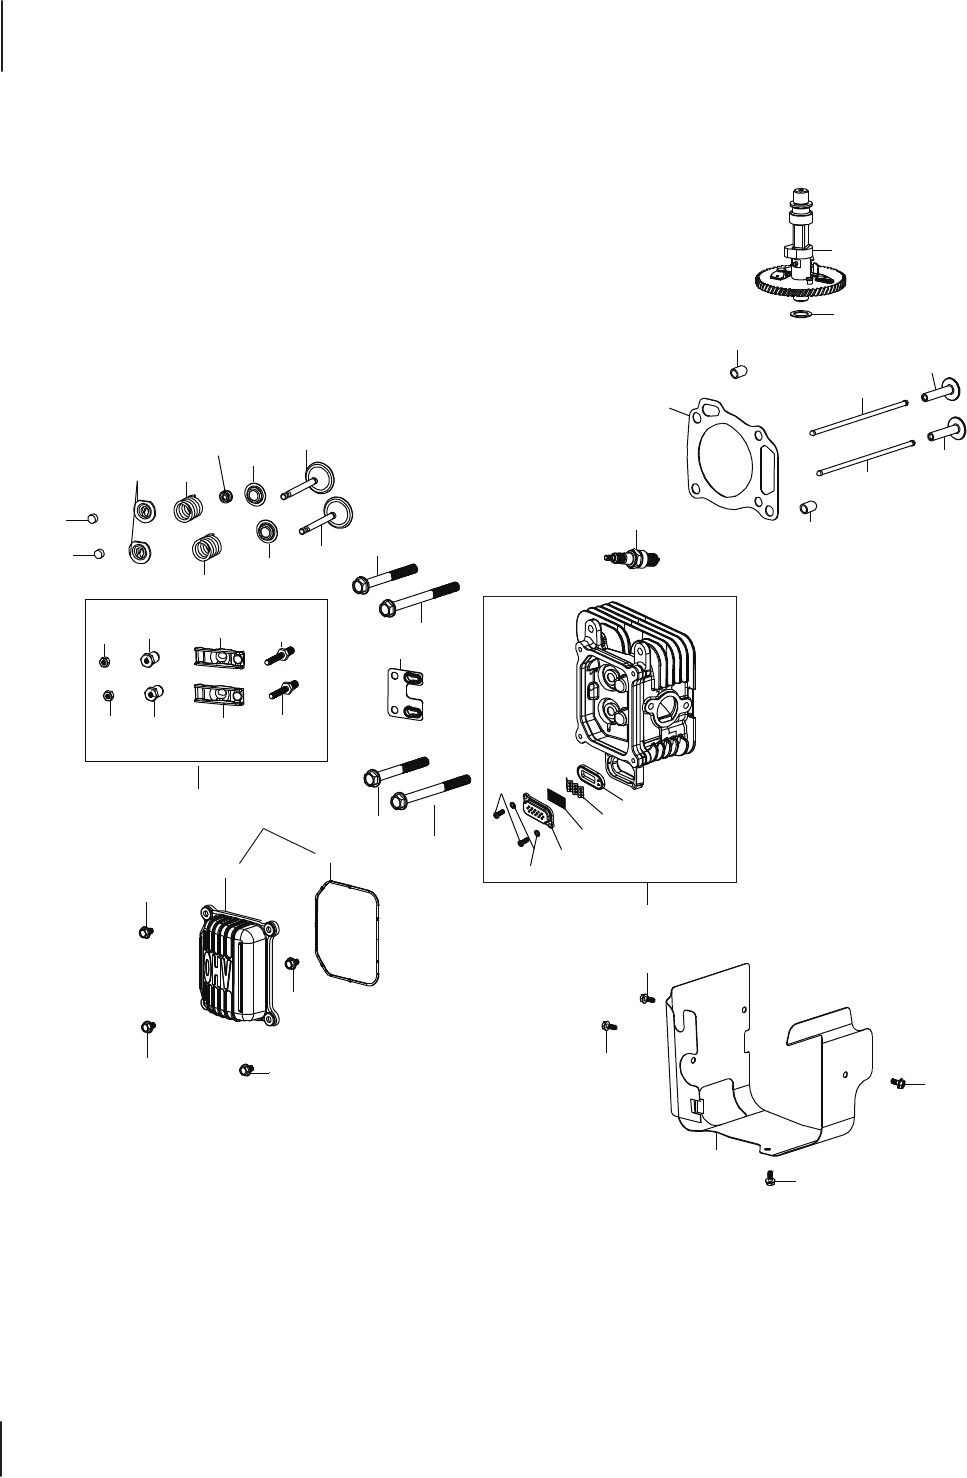 Page 38 of Cub Cadet Lawn Mower CC30 User Guide